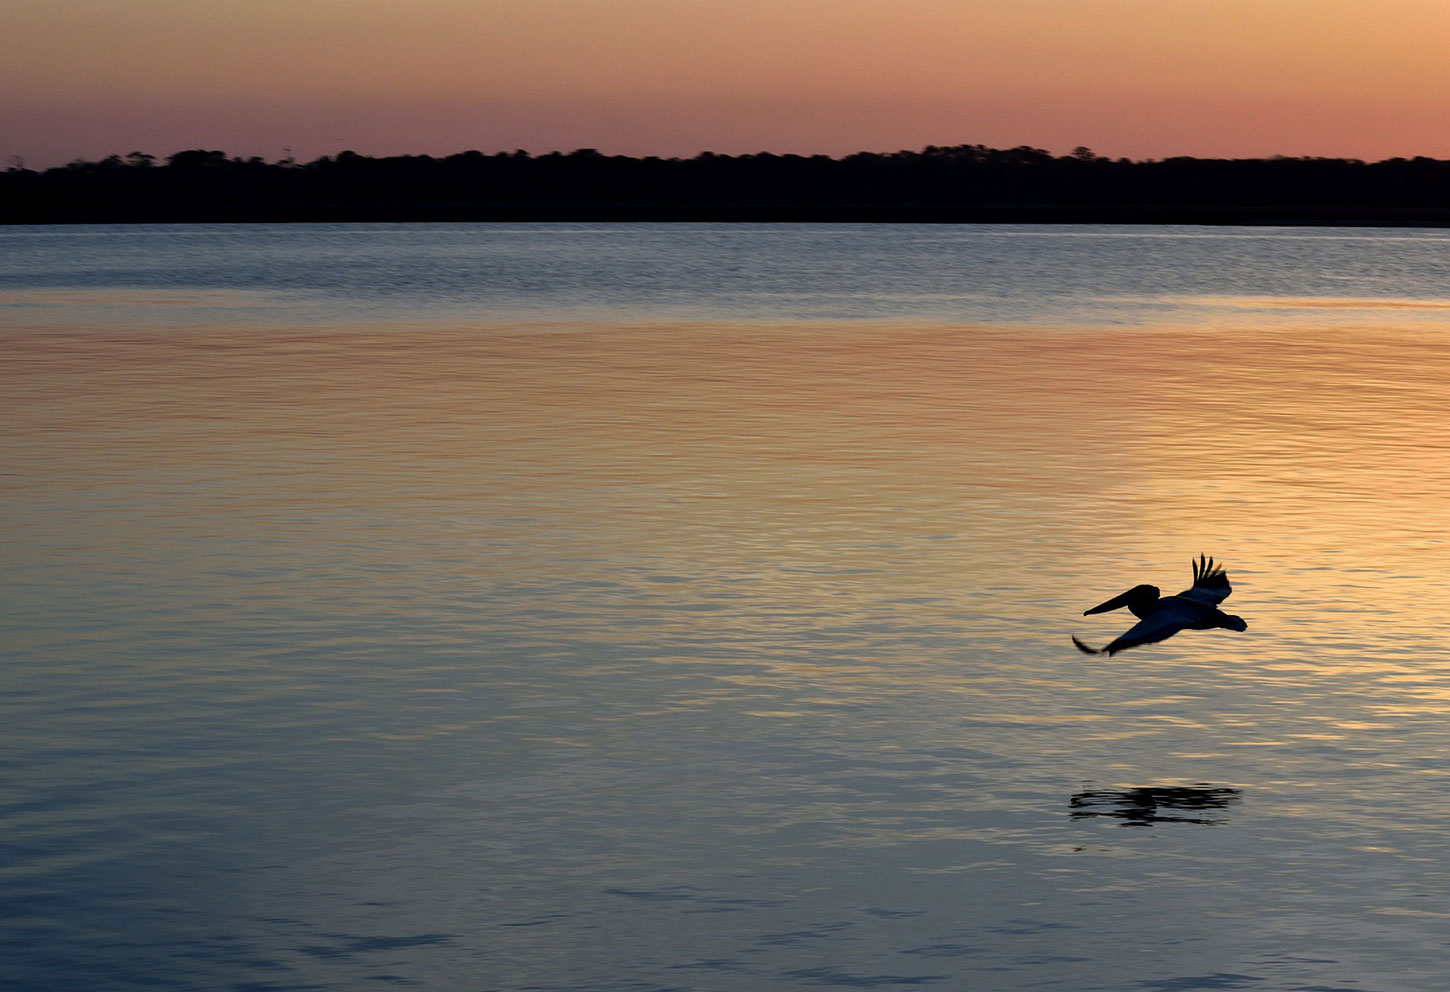 Pelican over water at dusk